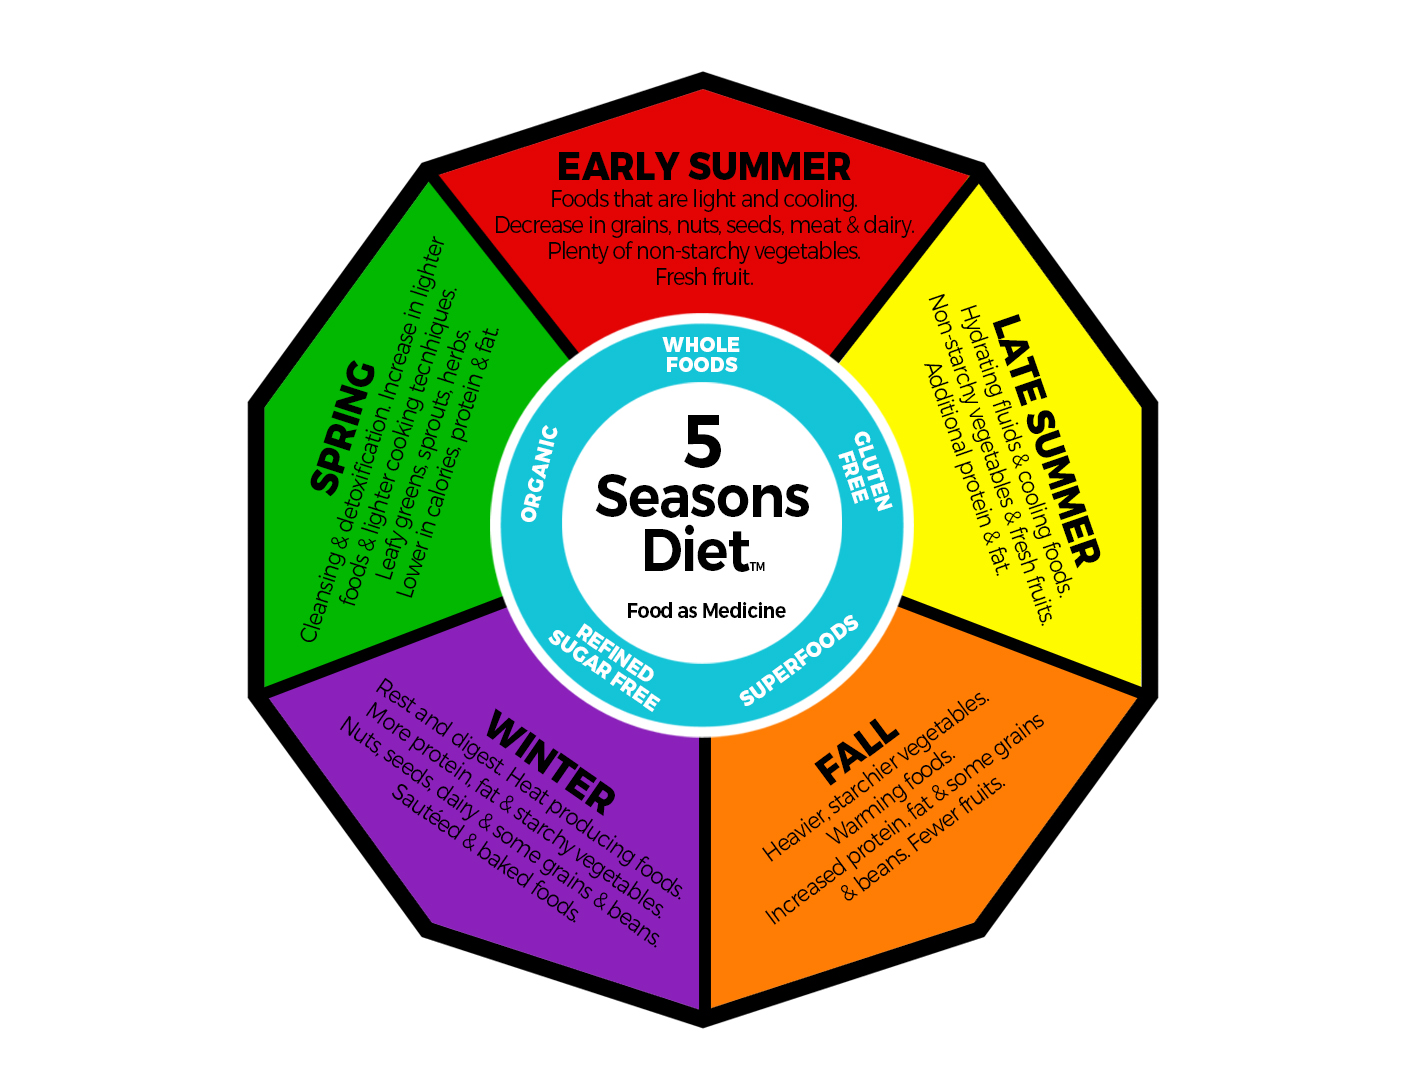 Why 5 seasons 5 seasons diet there are specific dietary needs during each season below is a summary of the 5 seasons diet and what our menus focus on seasonally for optimal health pooptronica